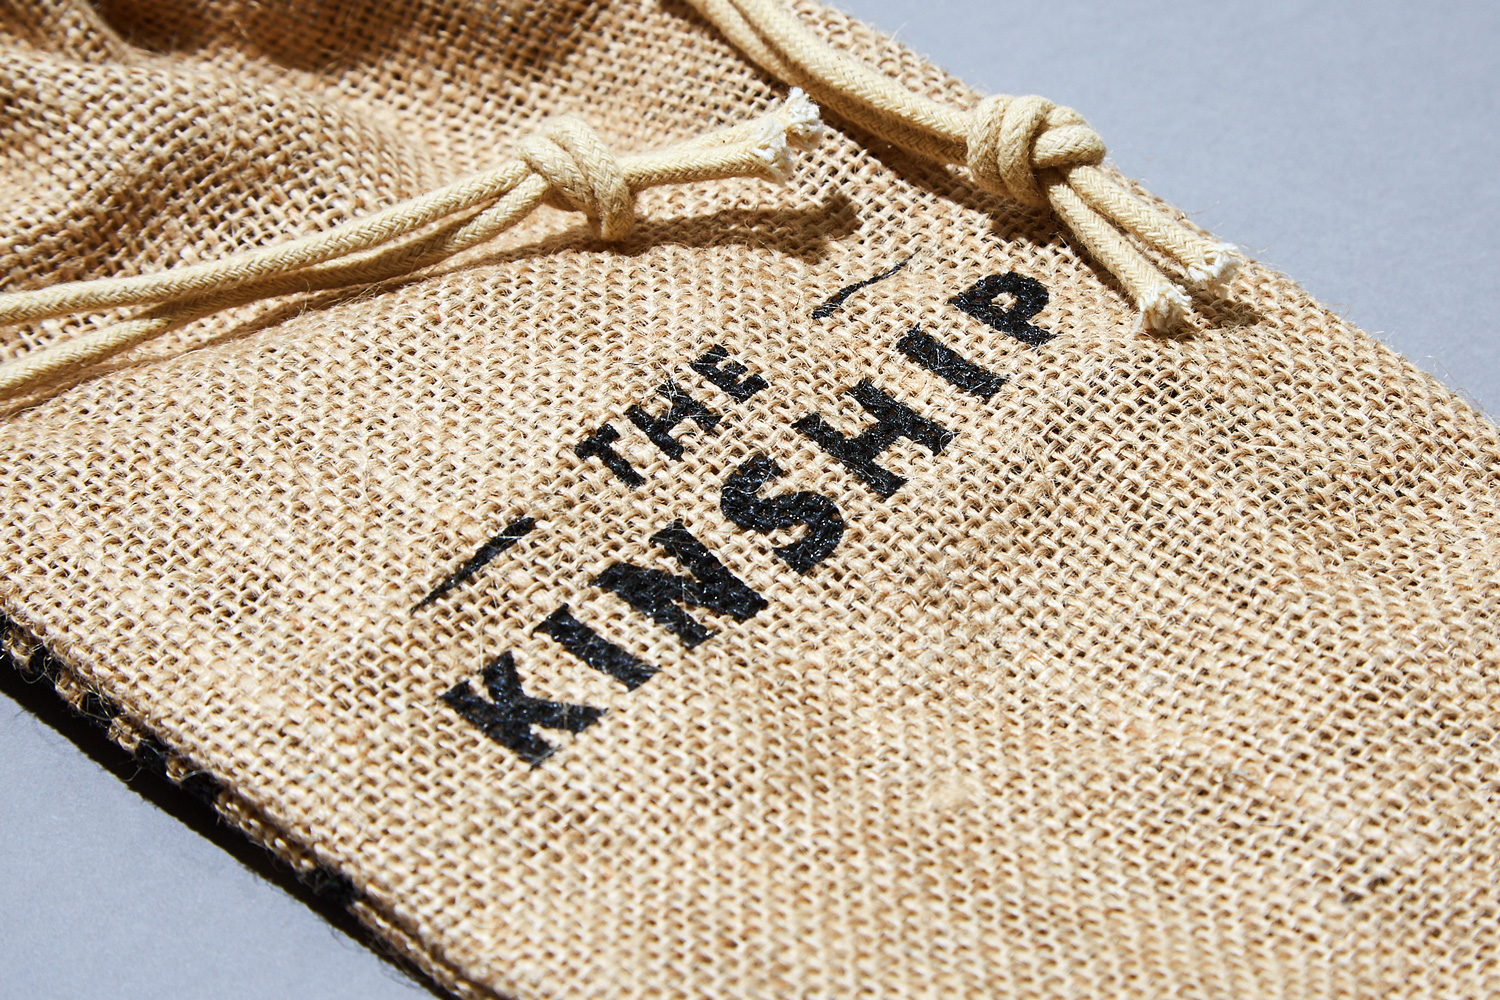 Progress Packaging Branded Hessian Drawstring Bag Printed Whisky Whiskey Spirits Alcohol Bottle Bag Kinship Hunter Laing